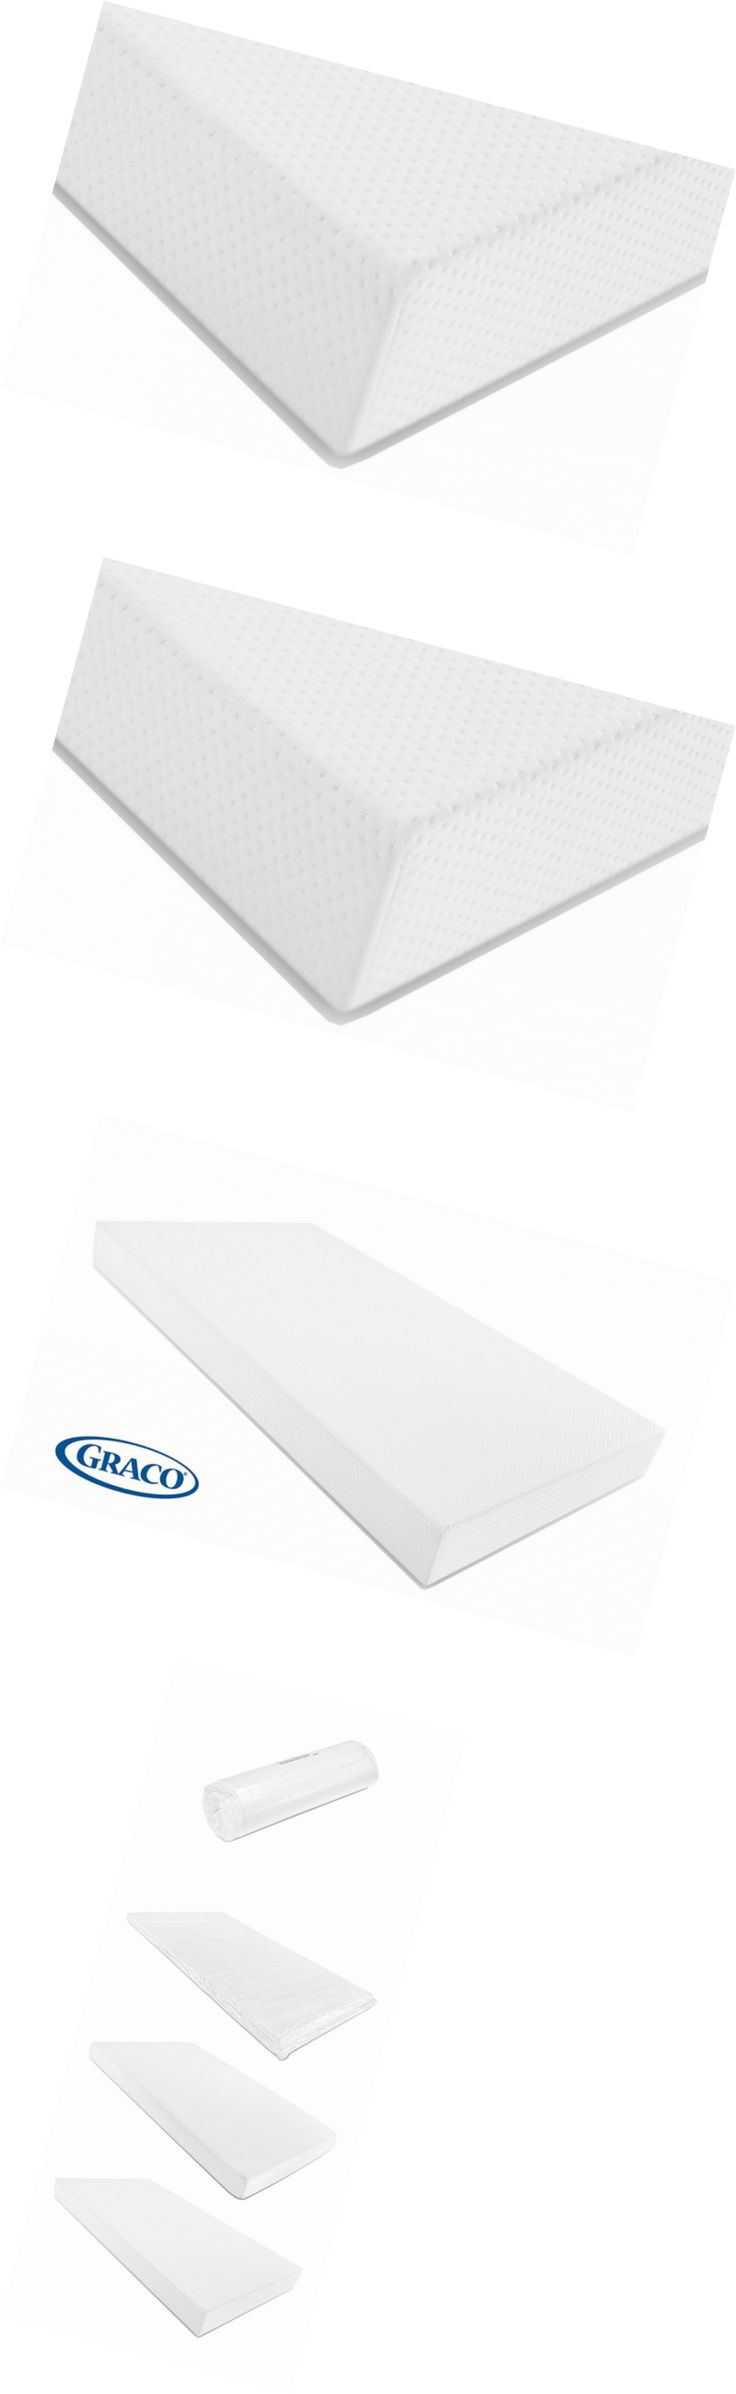 Crib Mattresses 117035: Graco Premium Foam Crib And Toddler Bed Mattress -> BUY IT NOW ONLY: $55.32 on eBay!